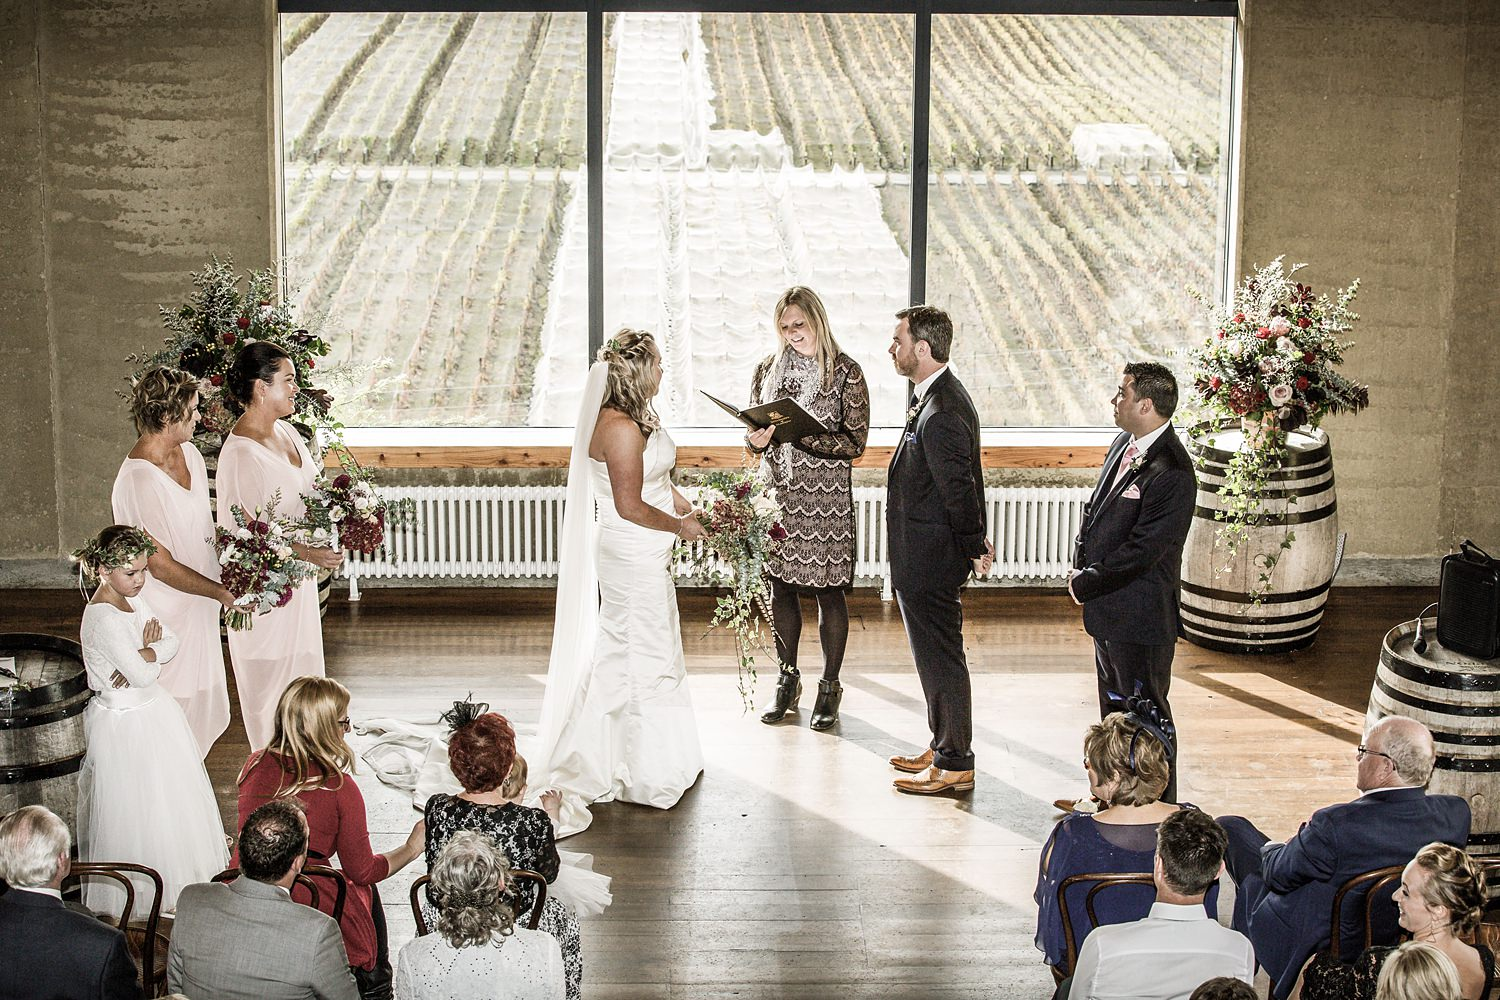 rippon-wedding-photography-10.jpg